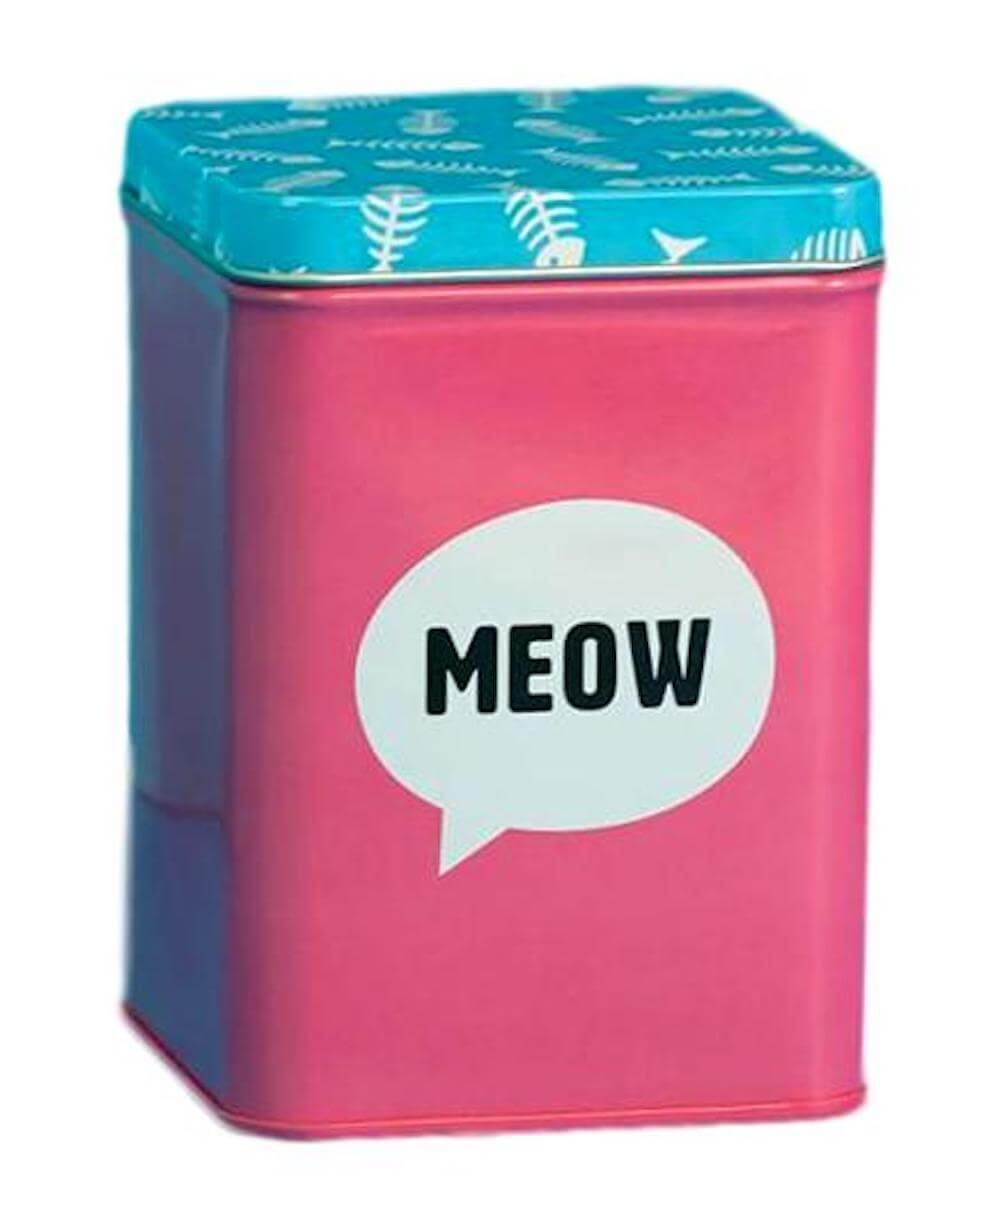 Meow Pink & Blue Metal Cat Treat Tin